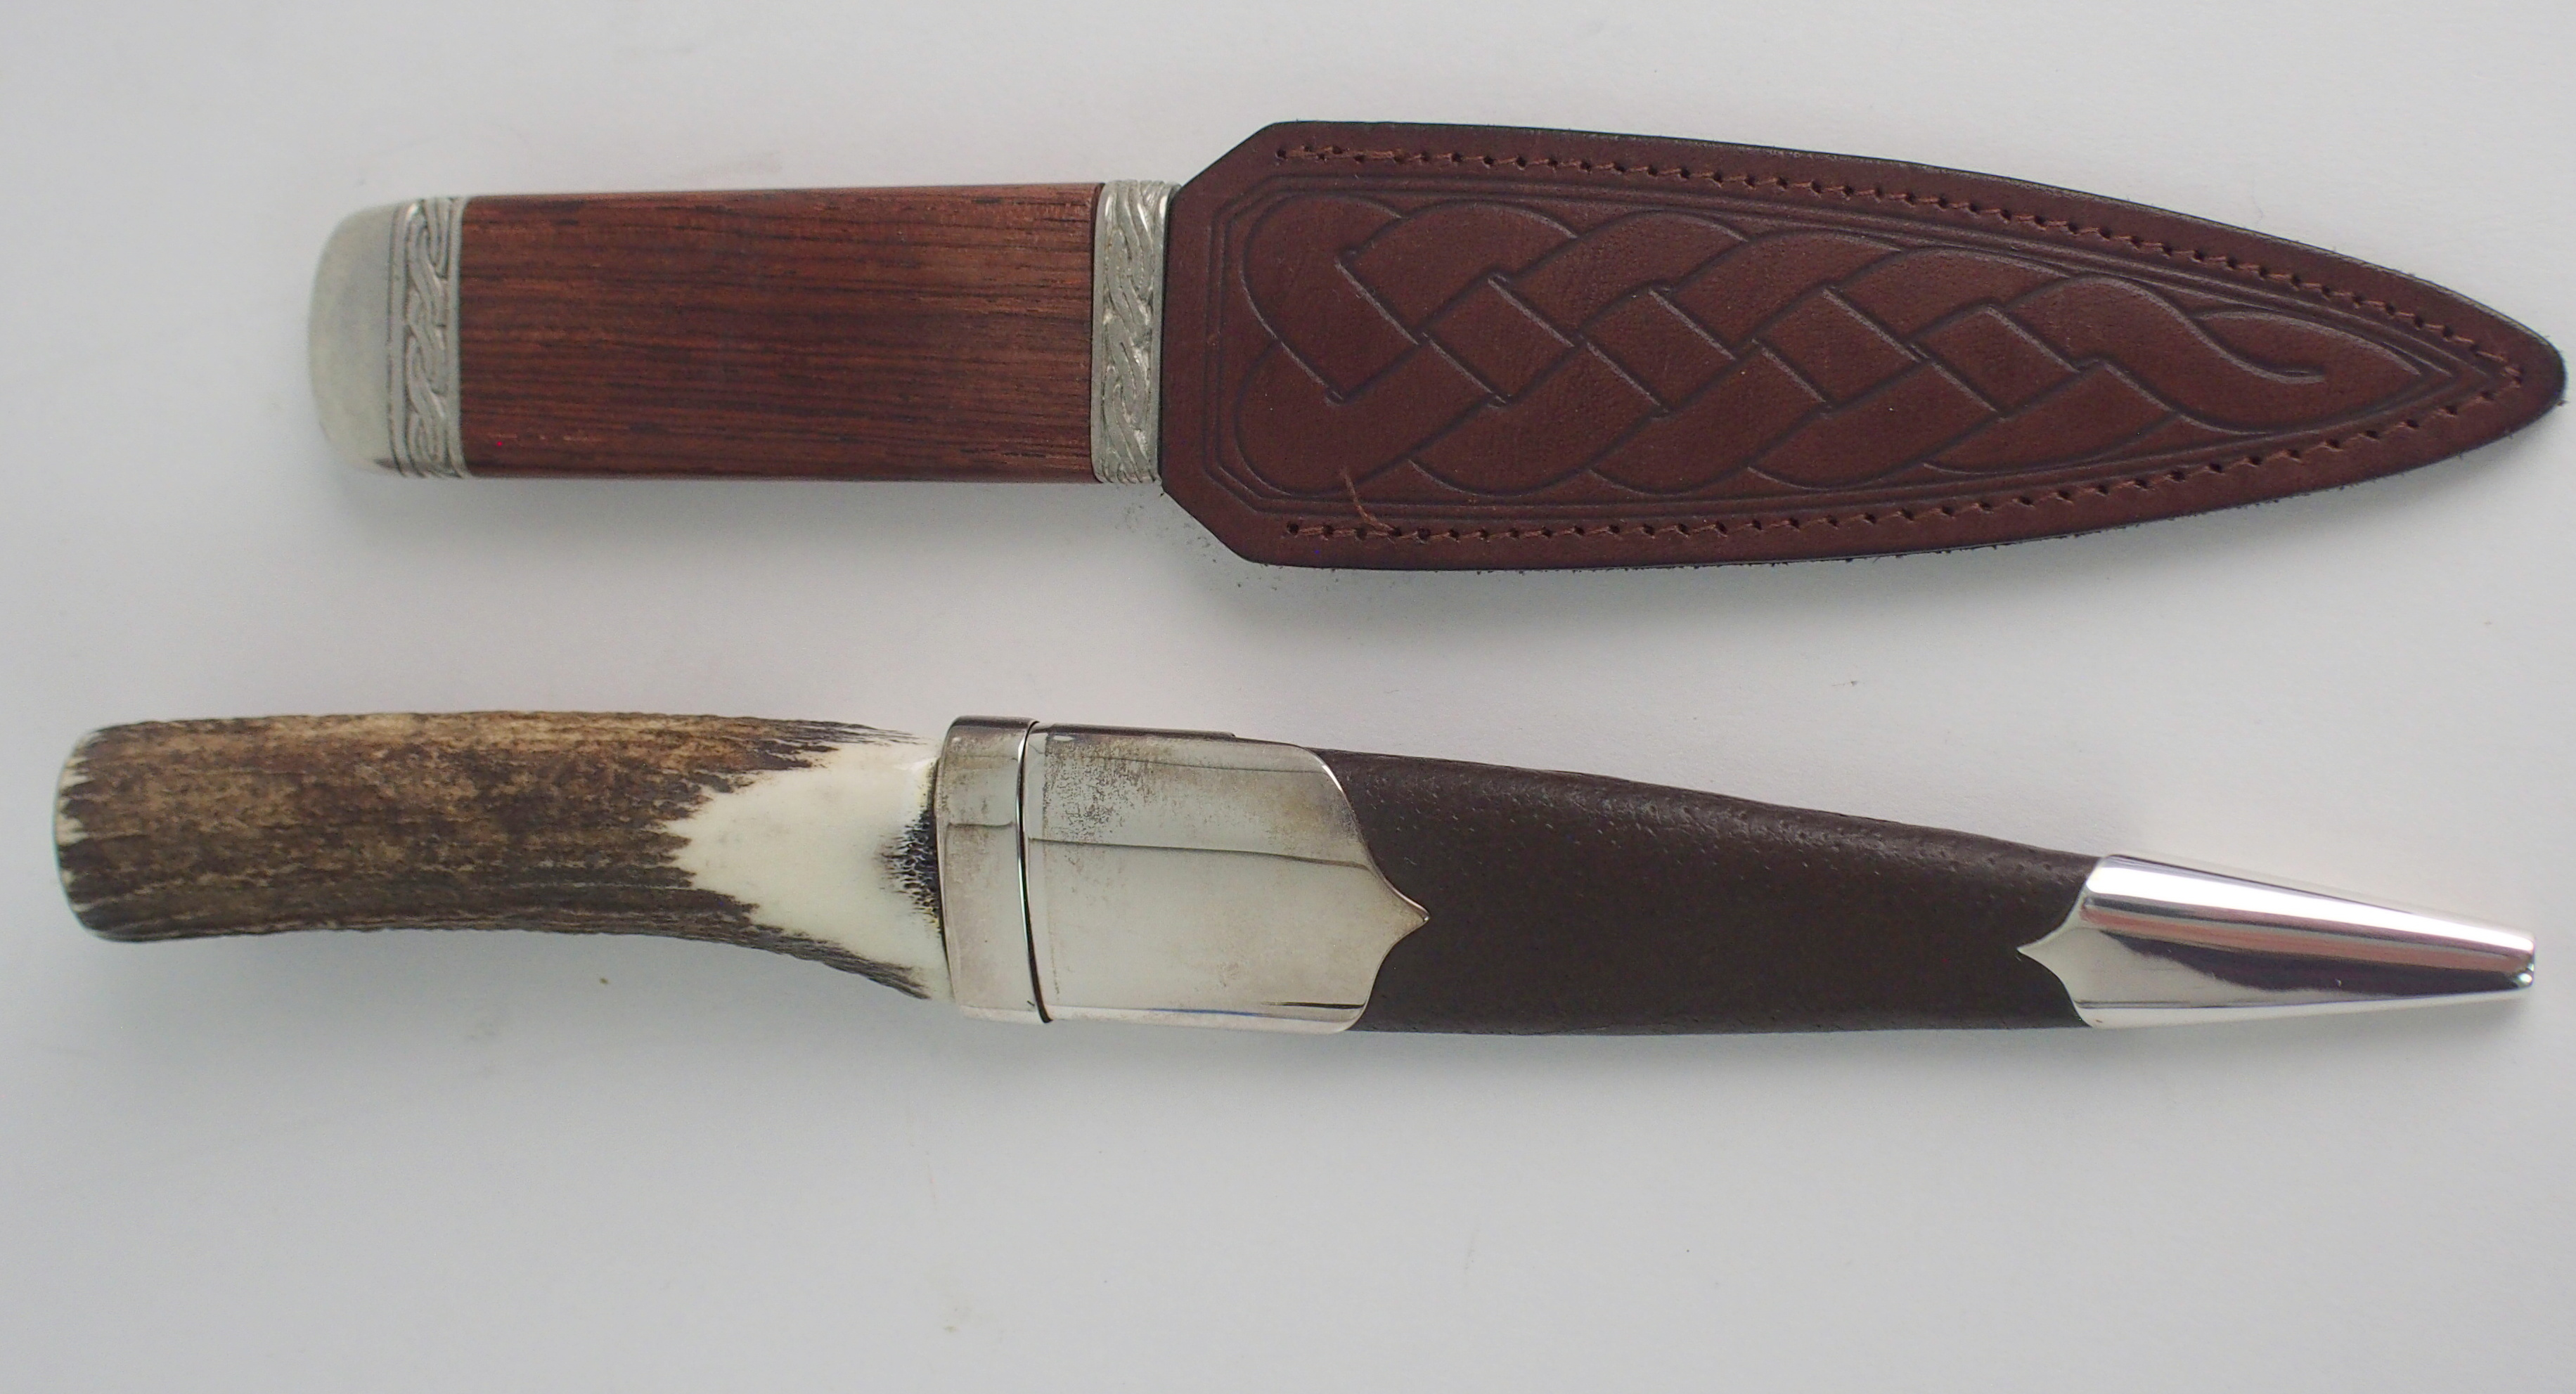 A SILVER-MOUNTED SGIAN DUBH BY HAMILTON & INCHES with brown goatskin scabbard and stag antler handle - Image 3 of 4